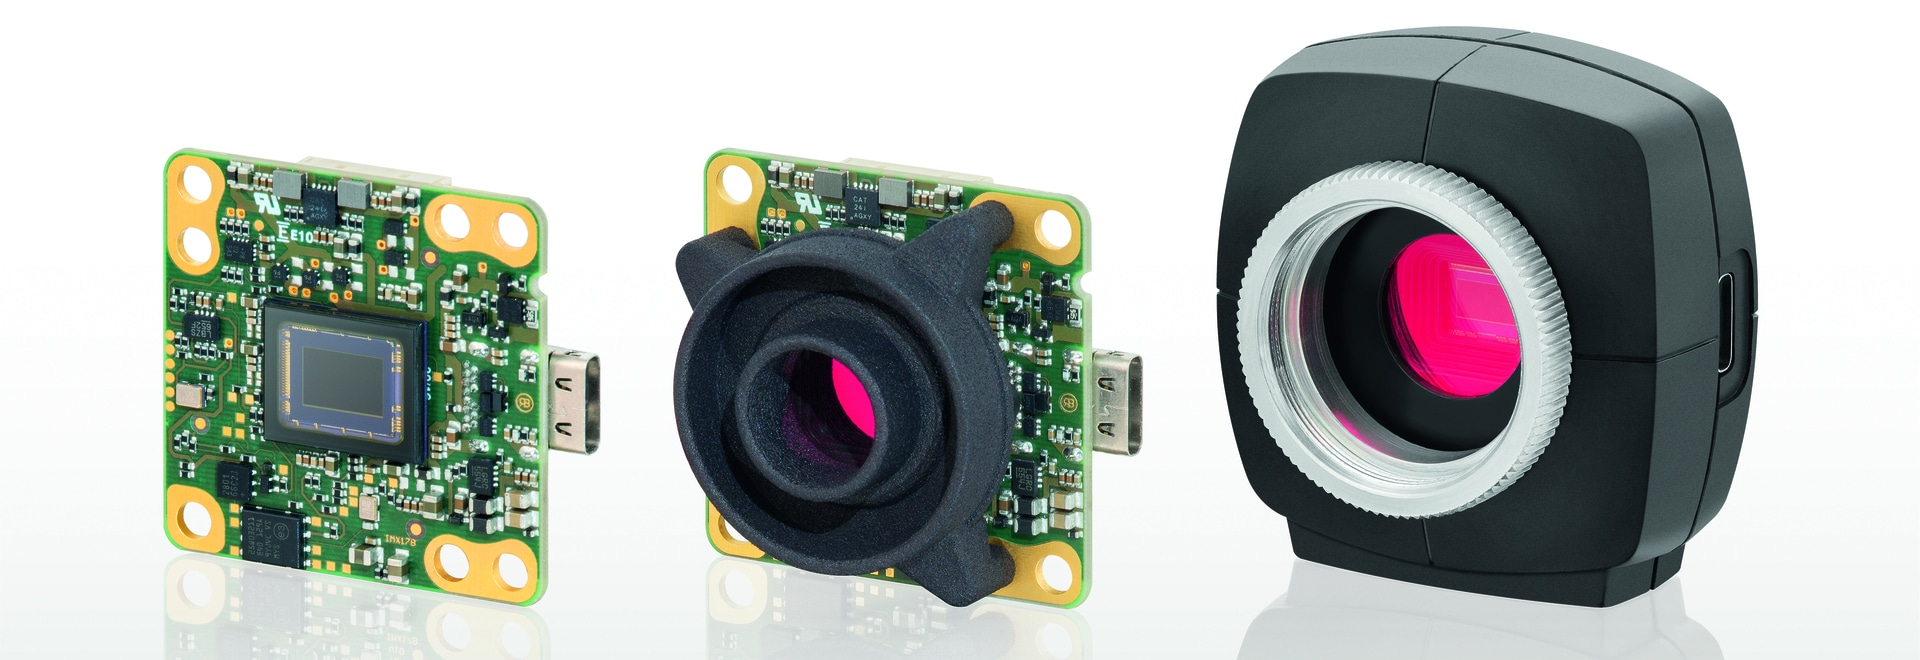 Cost-effective, single board solution for embedded vision